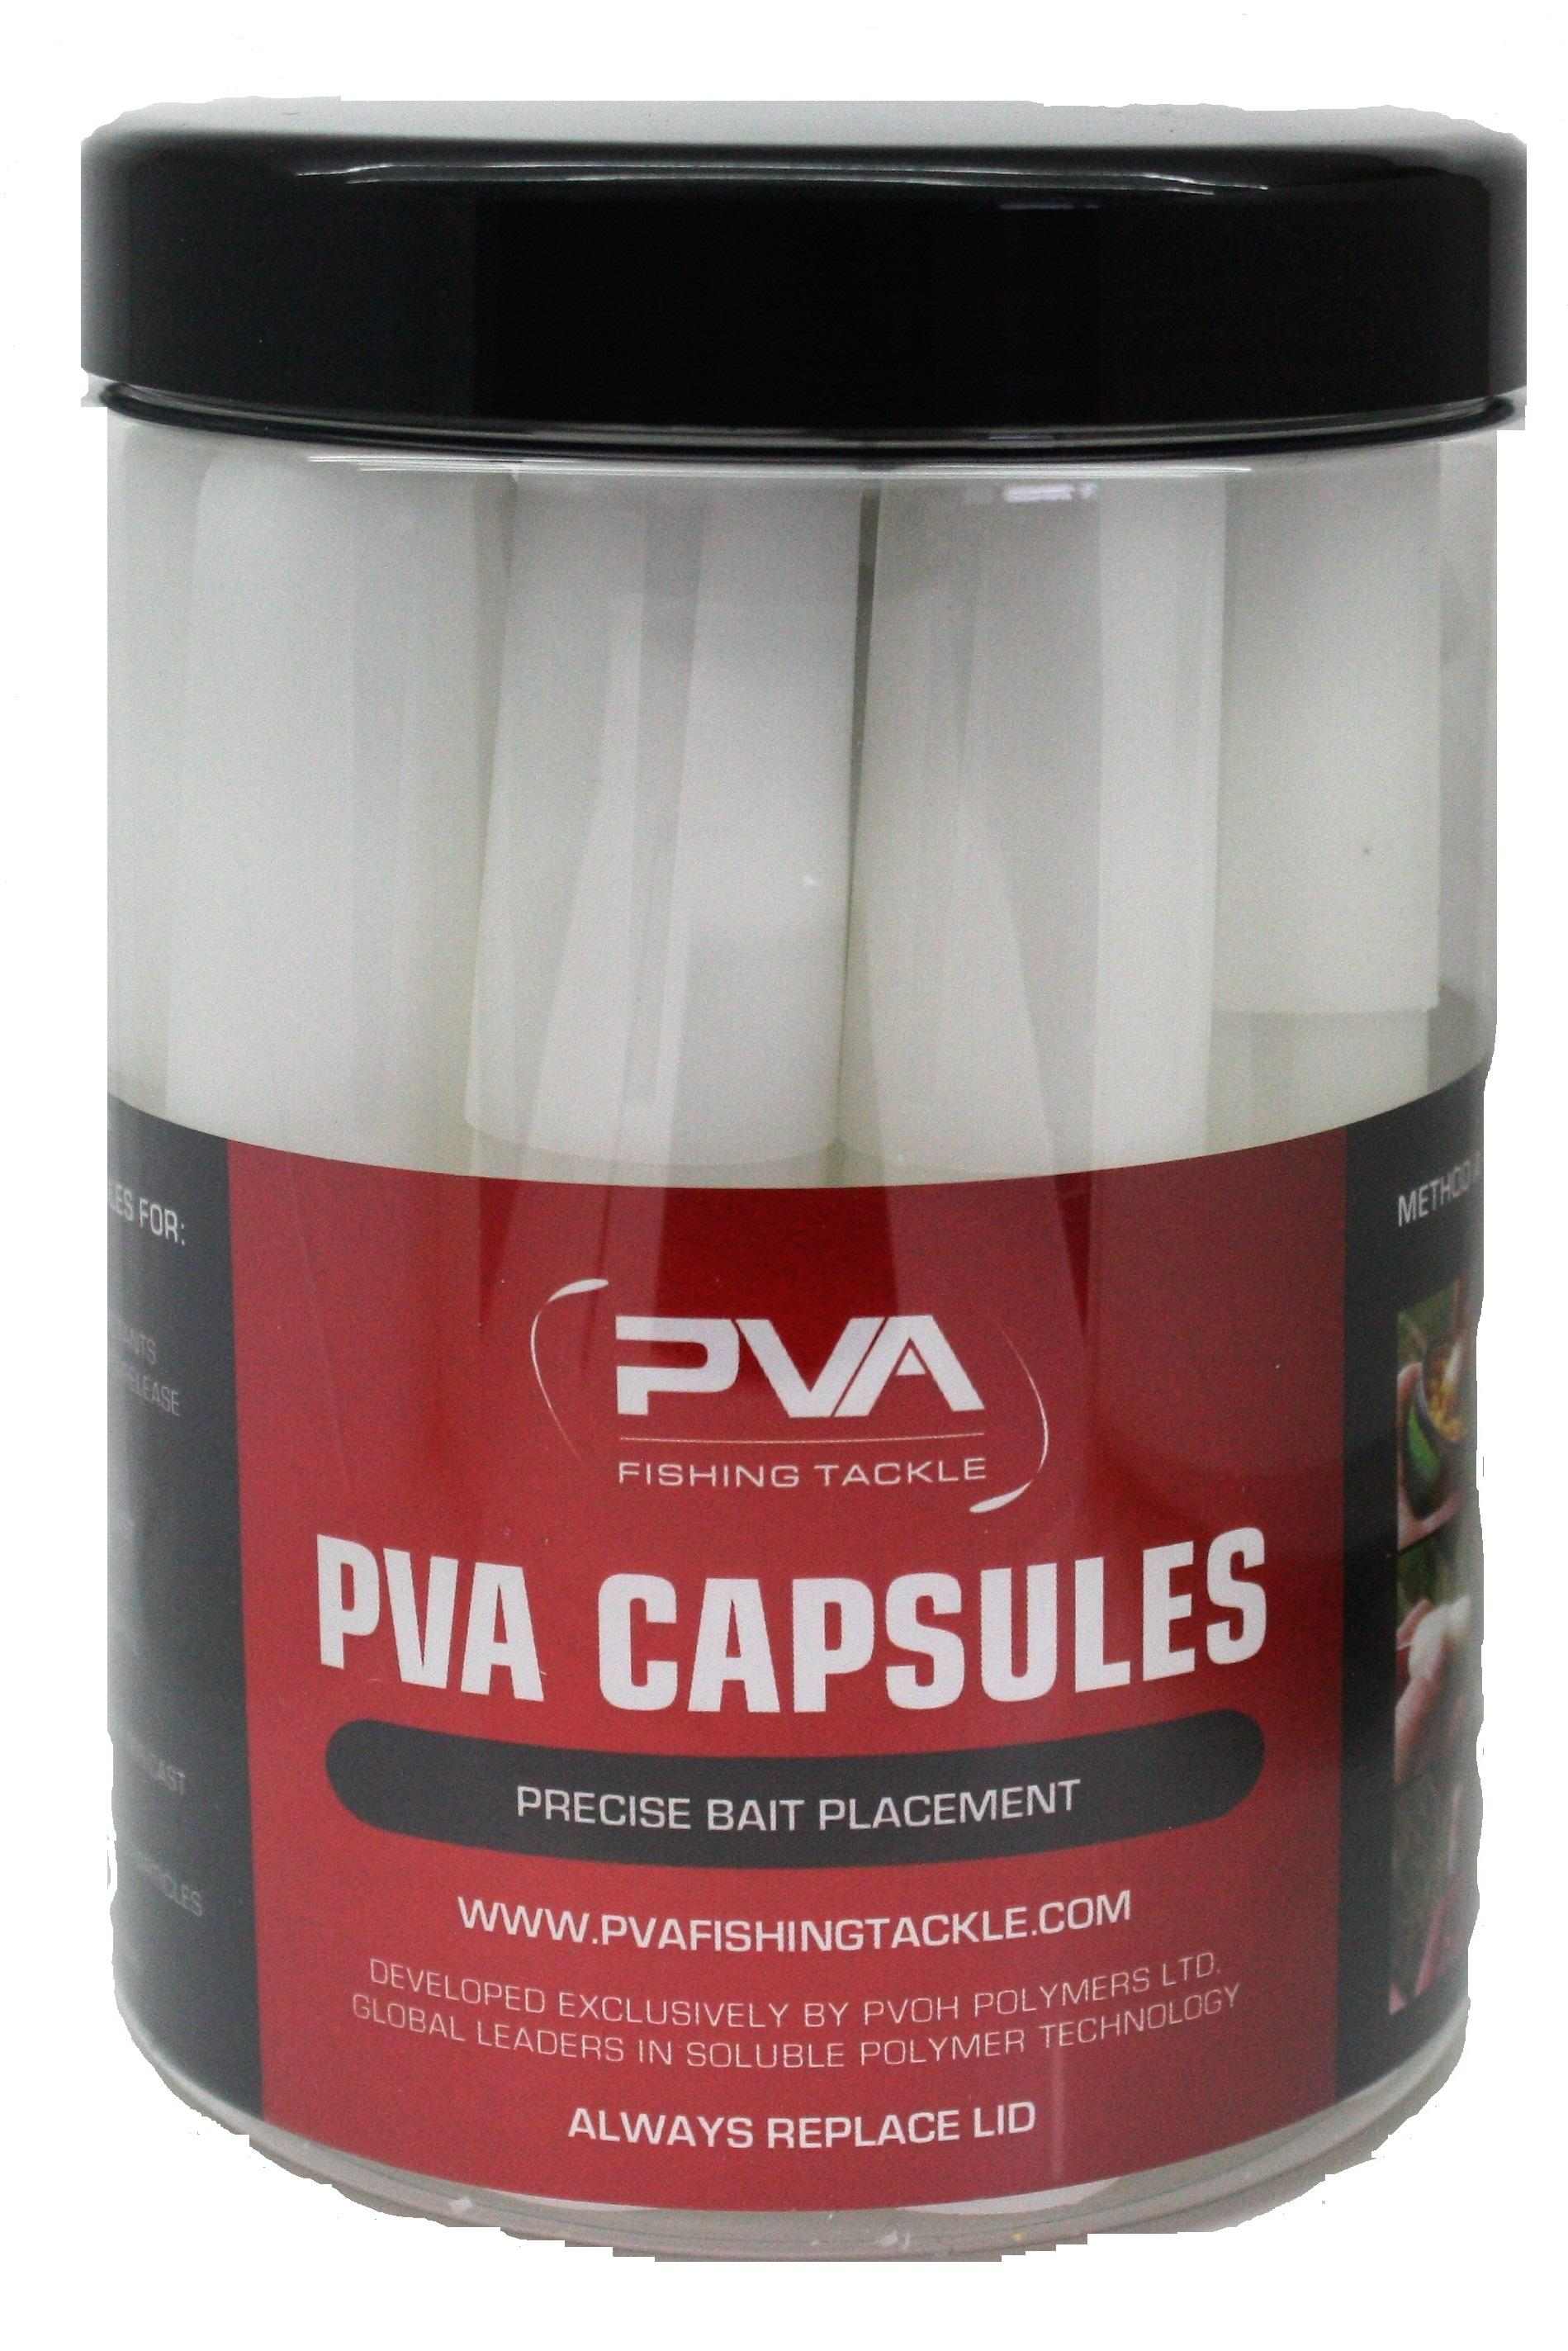 Pack of 20 PVA Bait capsules for precise bait placement